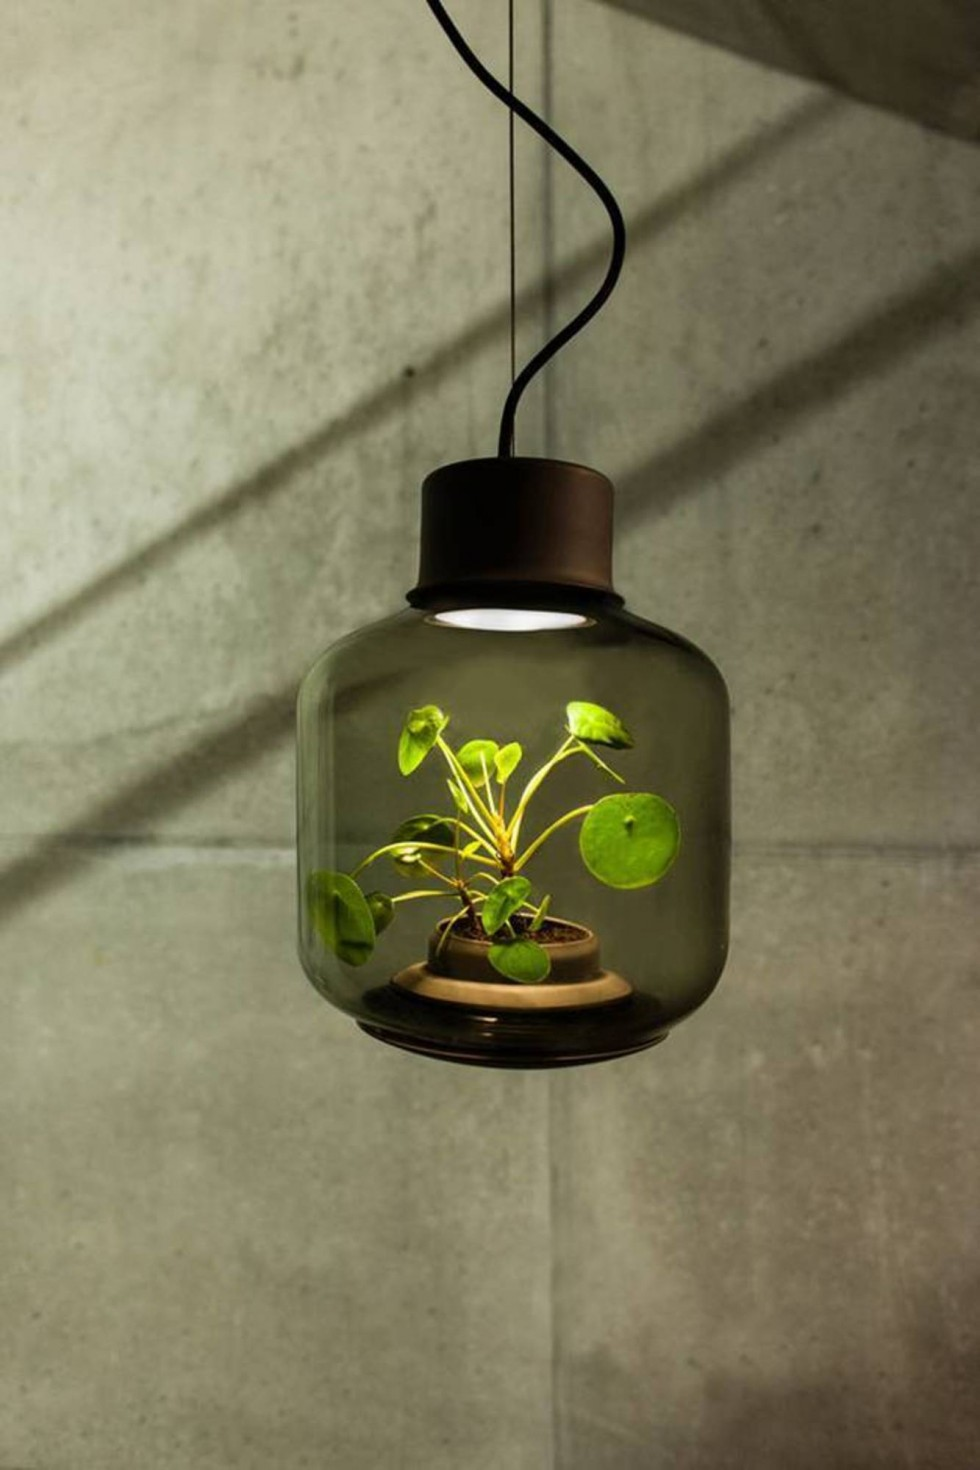 Find Terrarium Lamps by Nui Studio1 Nui Studio Find Terrarium Lamps by Nui Studio Find Terrarium Lamps by Nui Studio1 e1460363386819